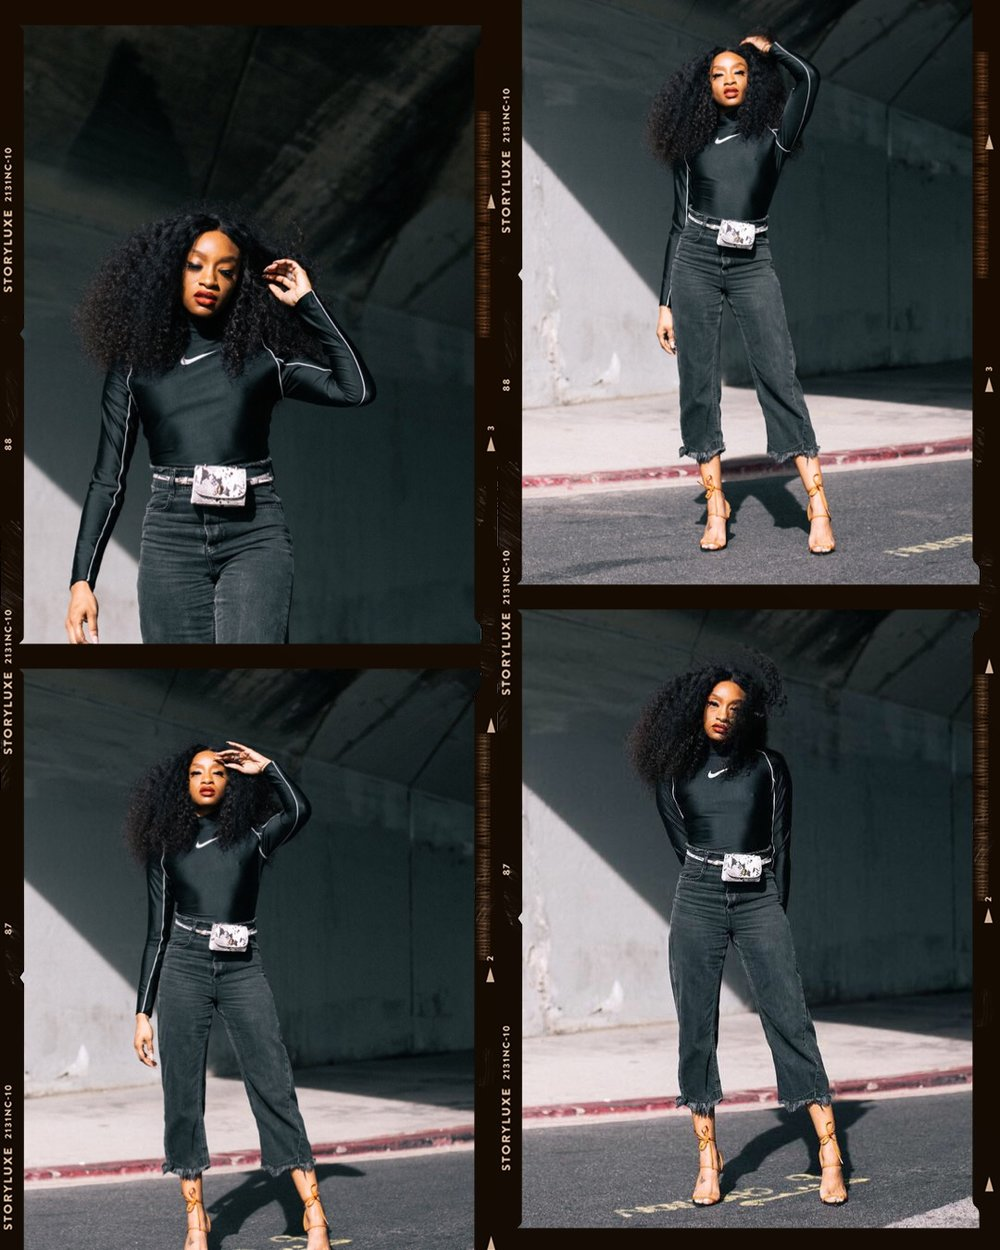 Shop The Look: - Nike X Ambush BodysuitJeansBodysuit